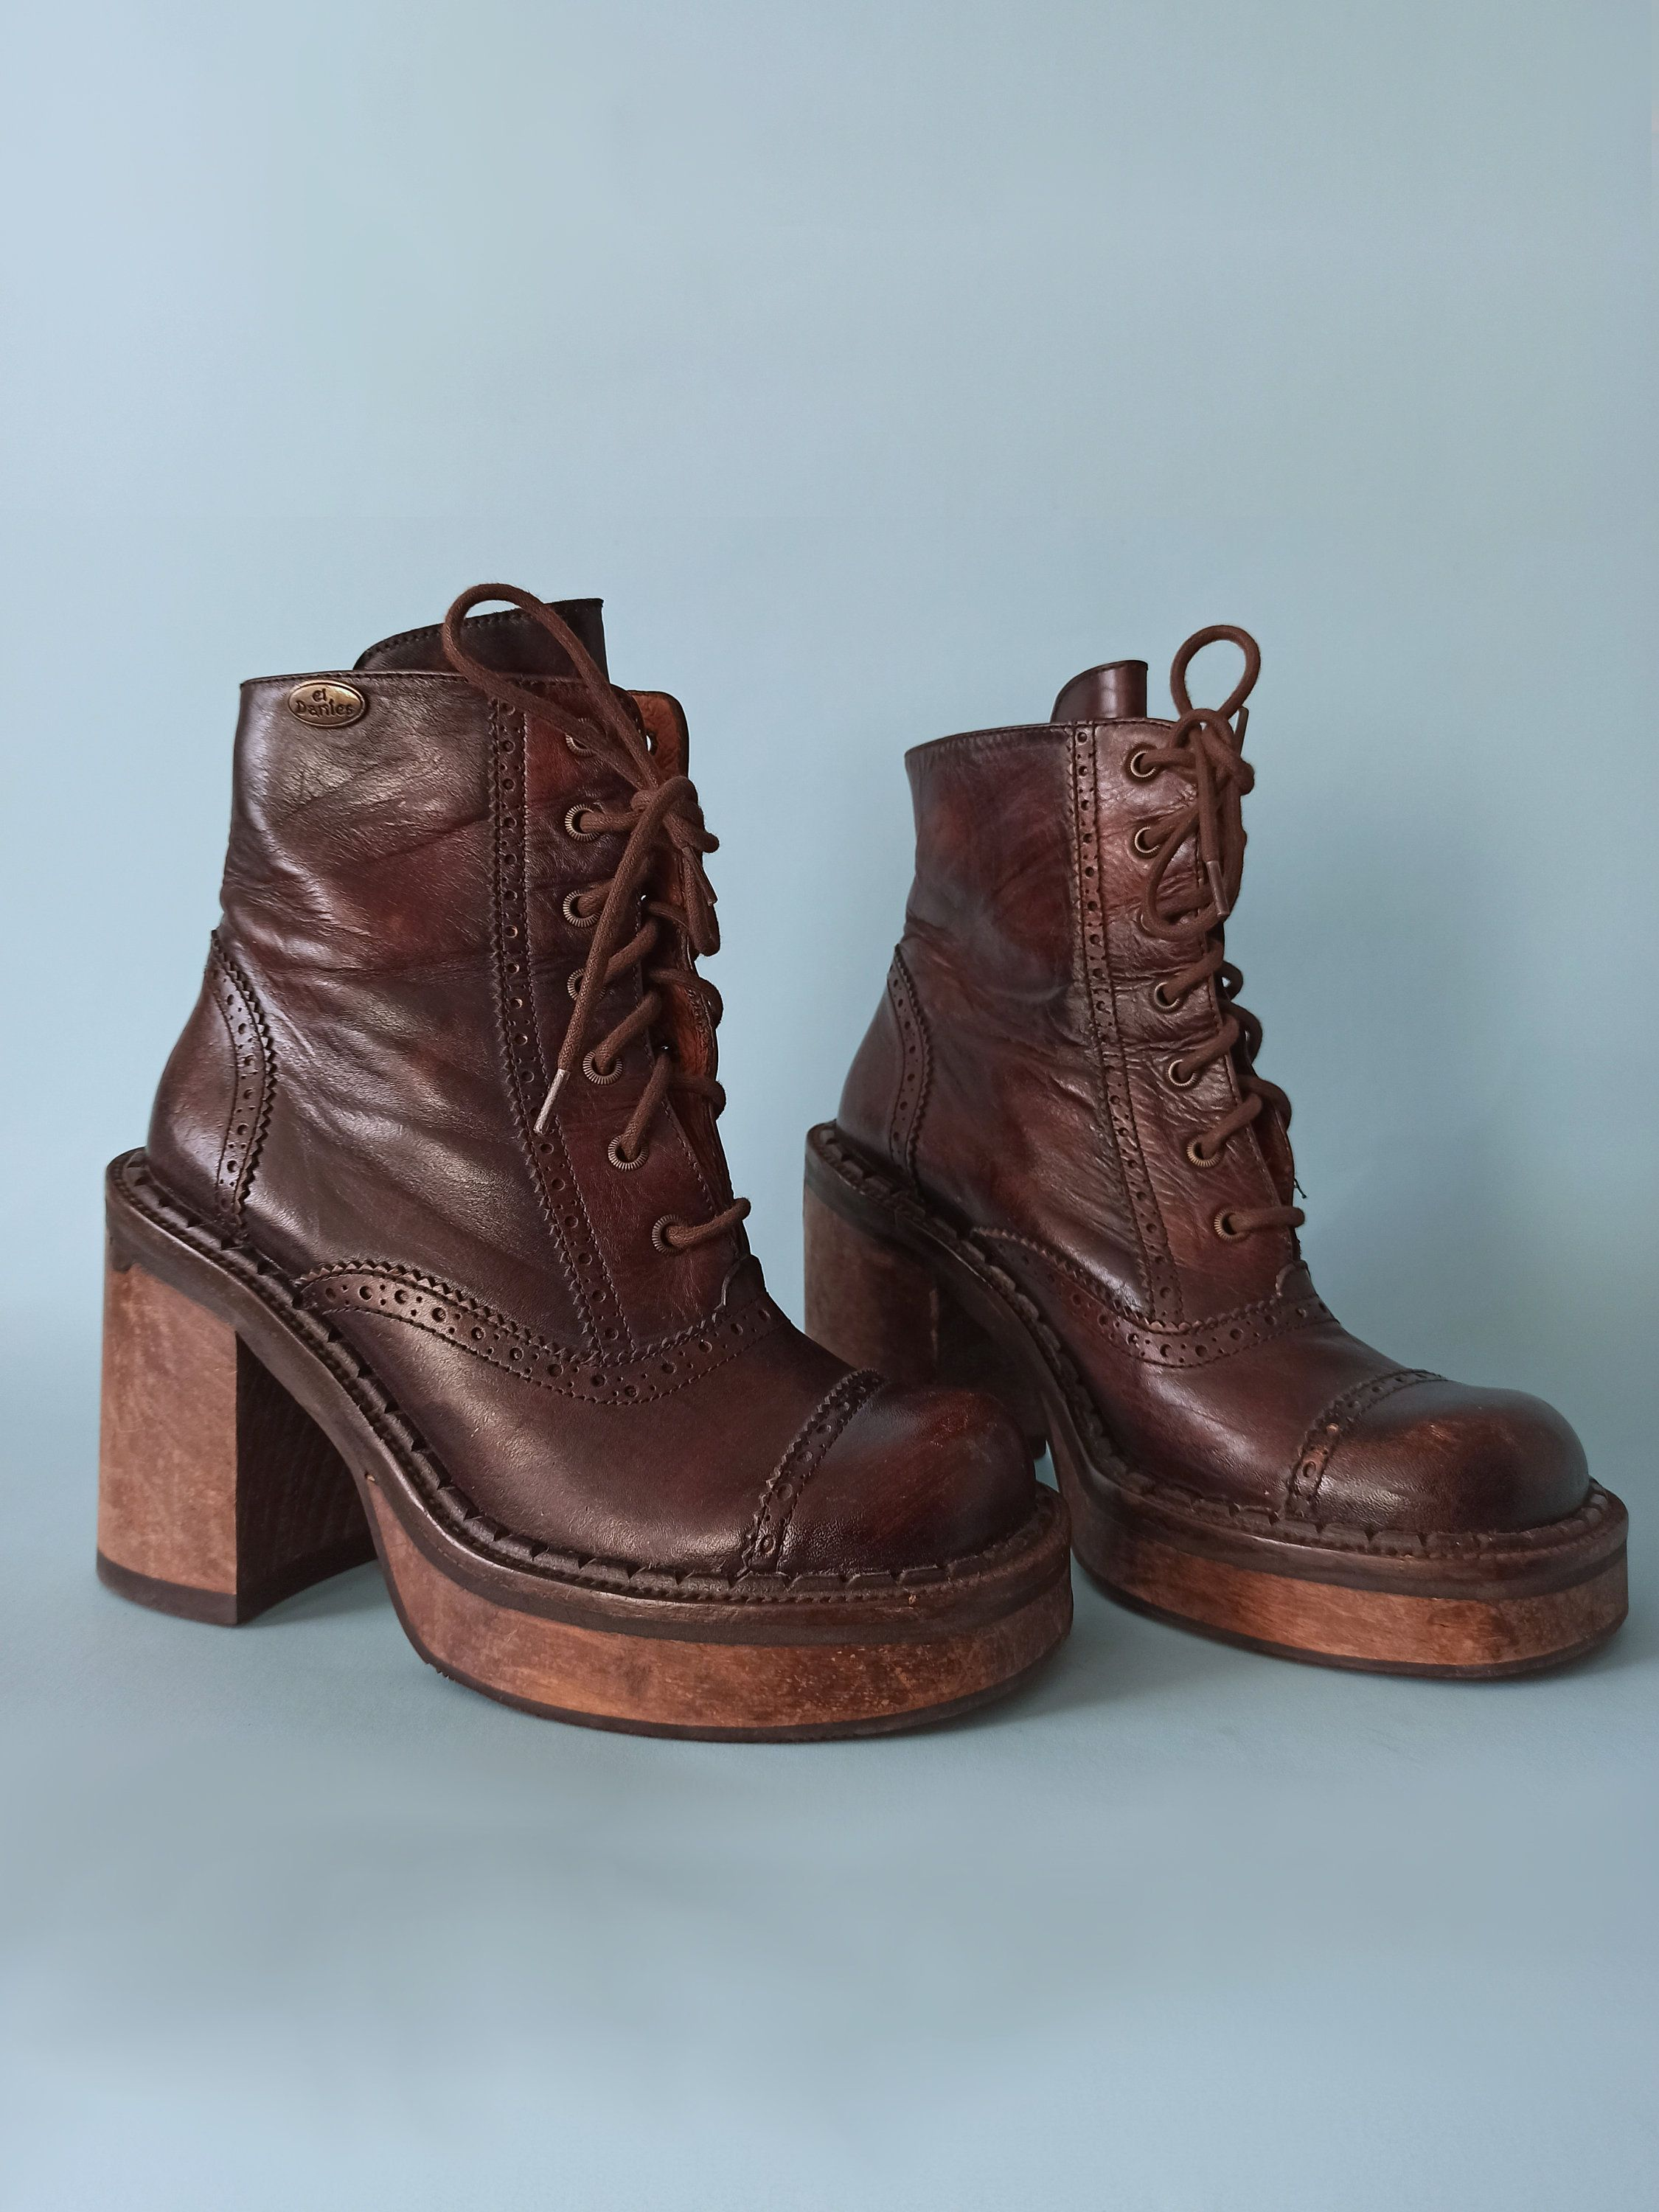 Vintage El Dantes Platform Boots With Shoelaces 70s Inspired Sz 37e 38c Eu Made In Spain Leather Boots Shoe Laces Platform Boots